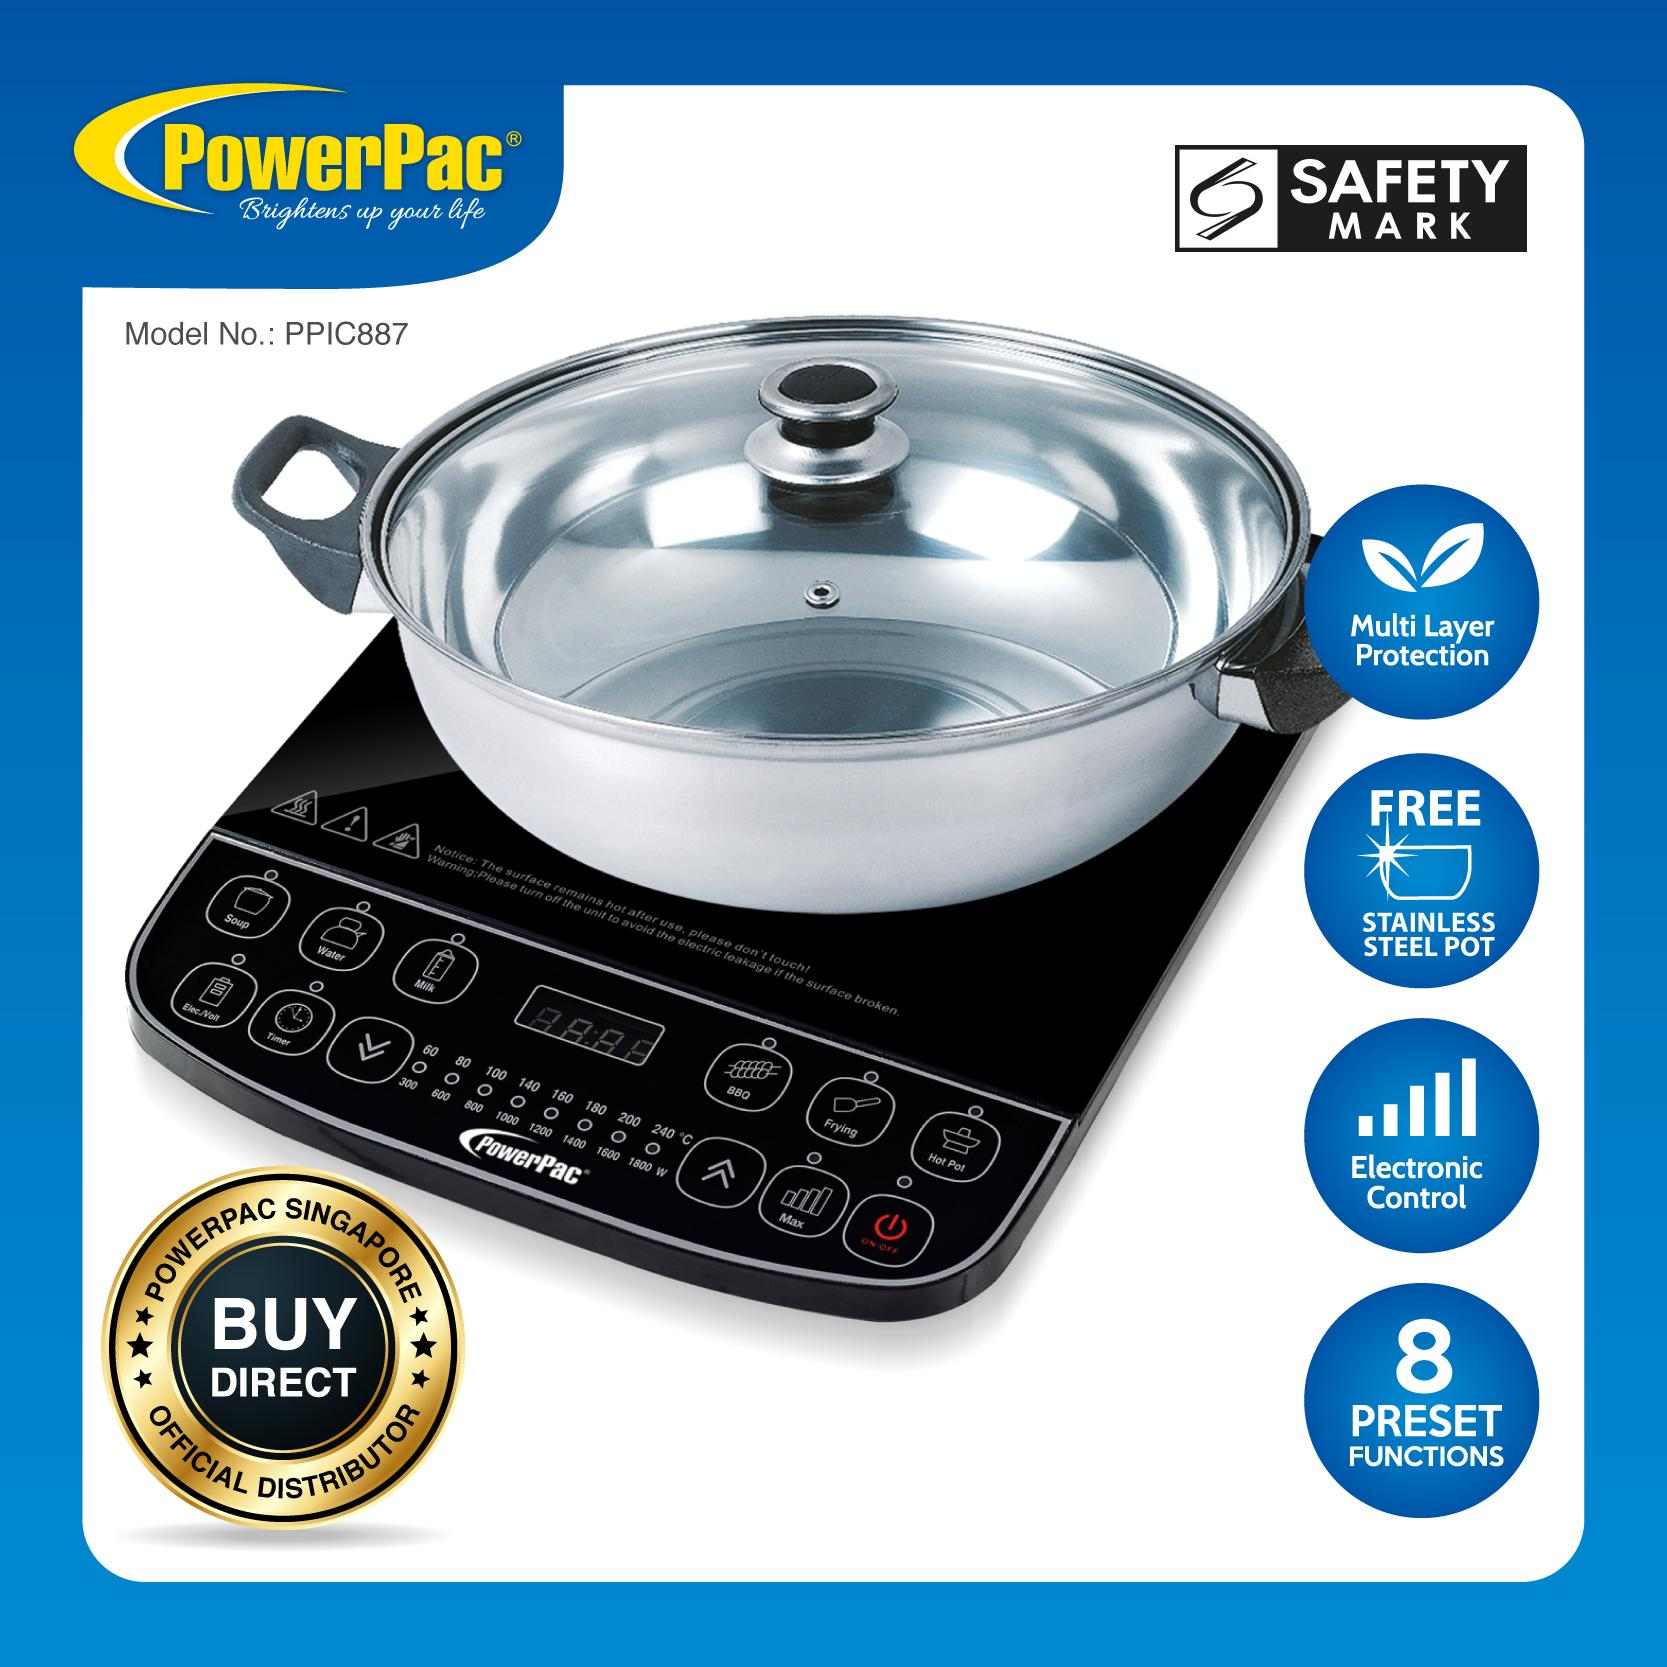 Powerpac Induction Cooker Steamboat With Stainless Steel Pot (ppic887) By Powerpac.